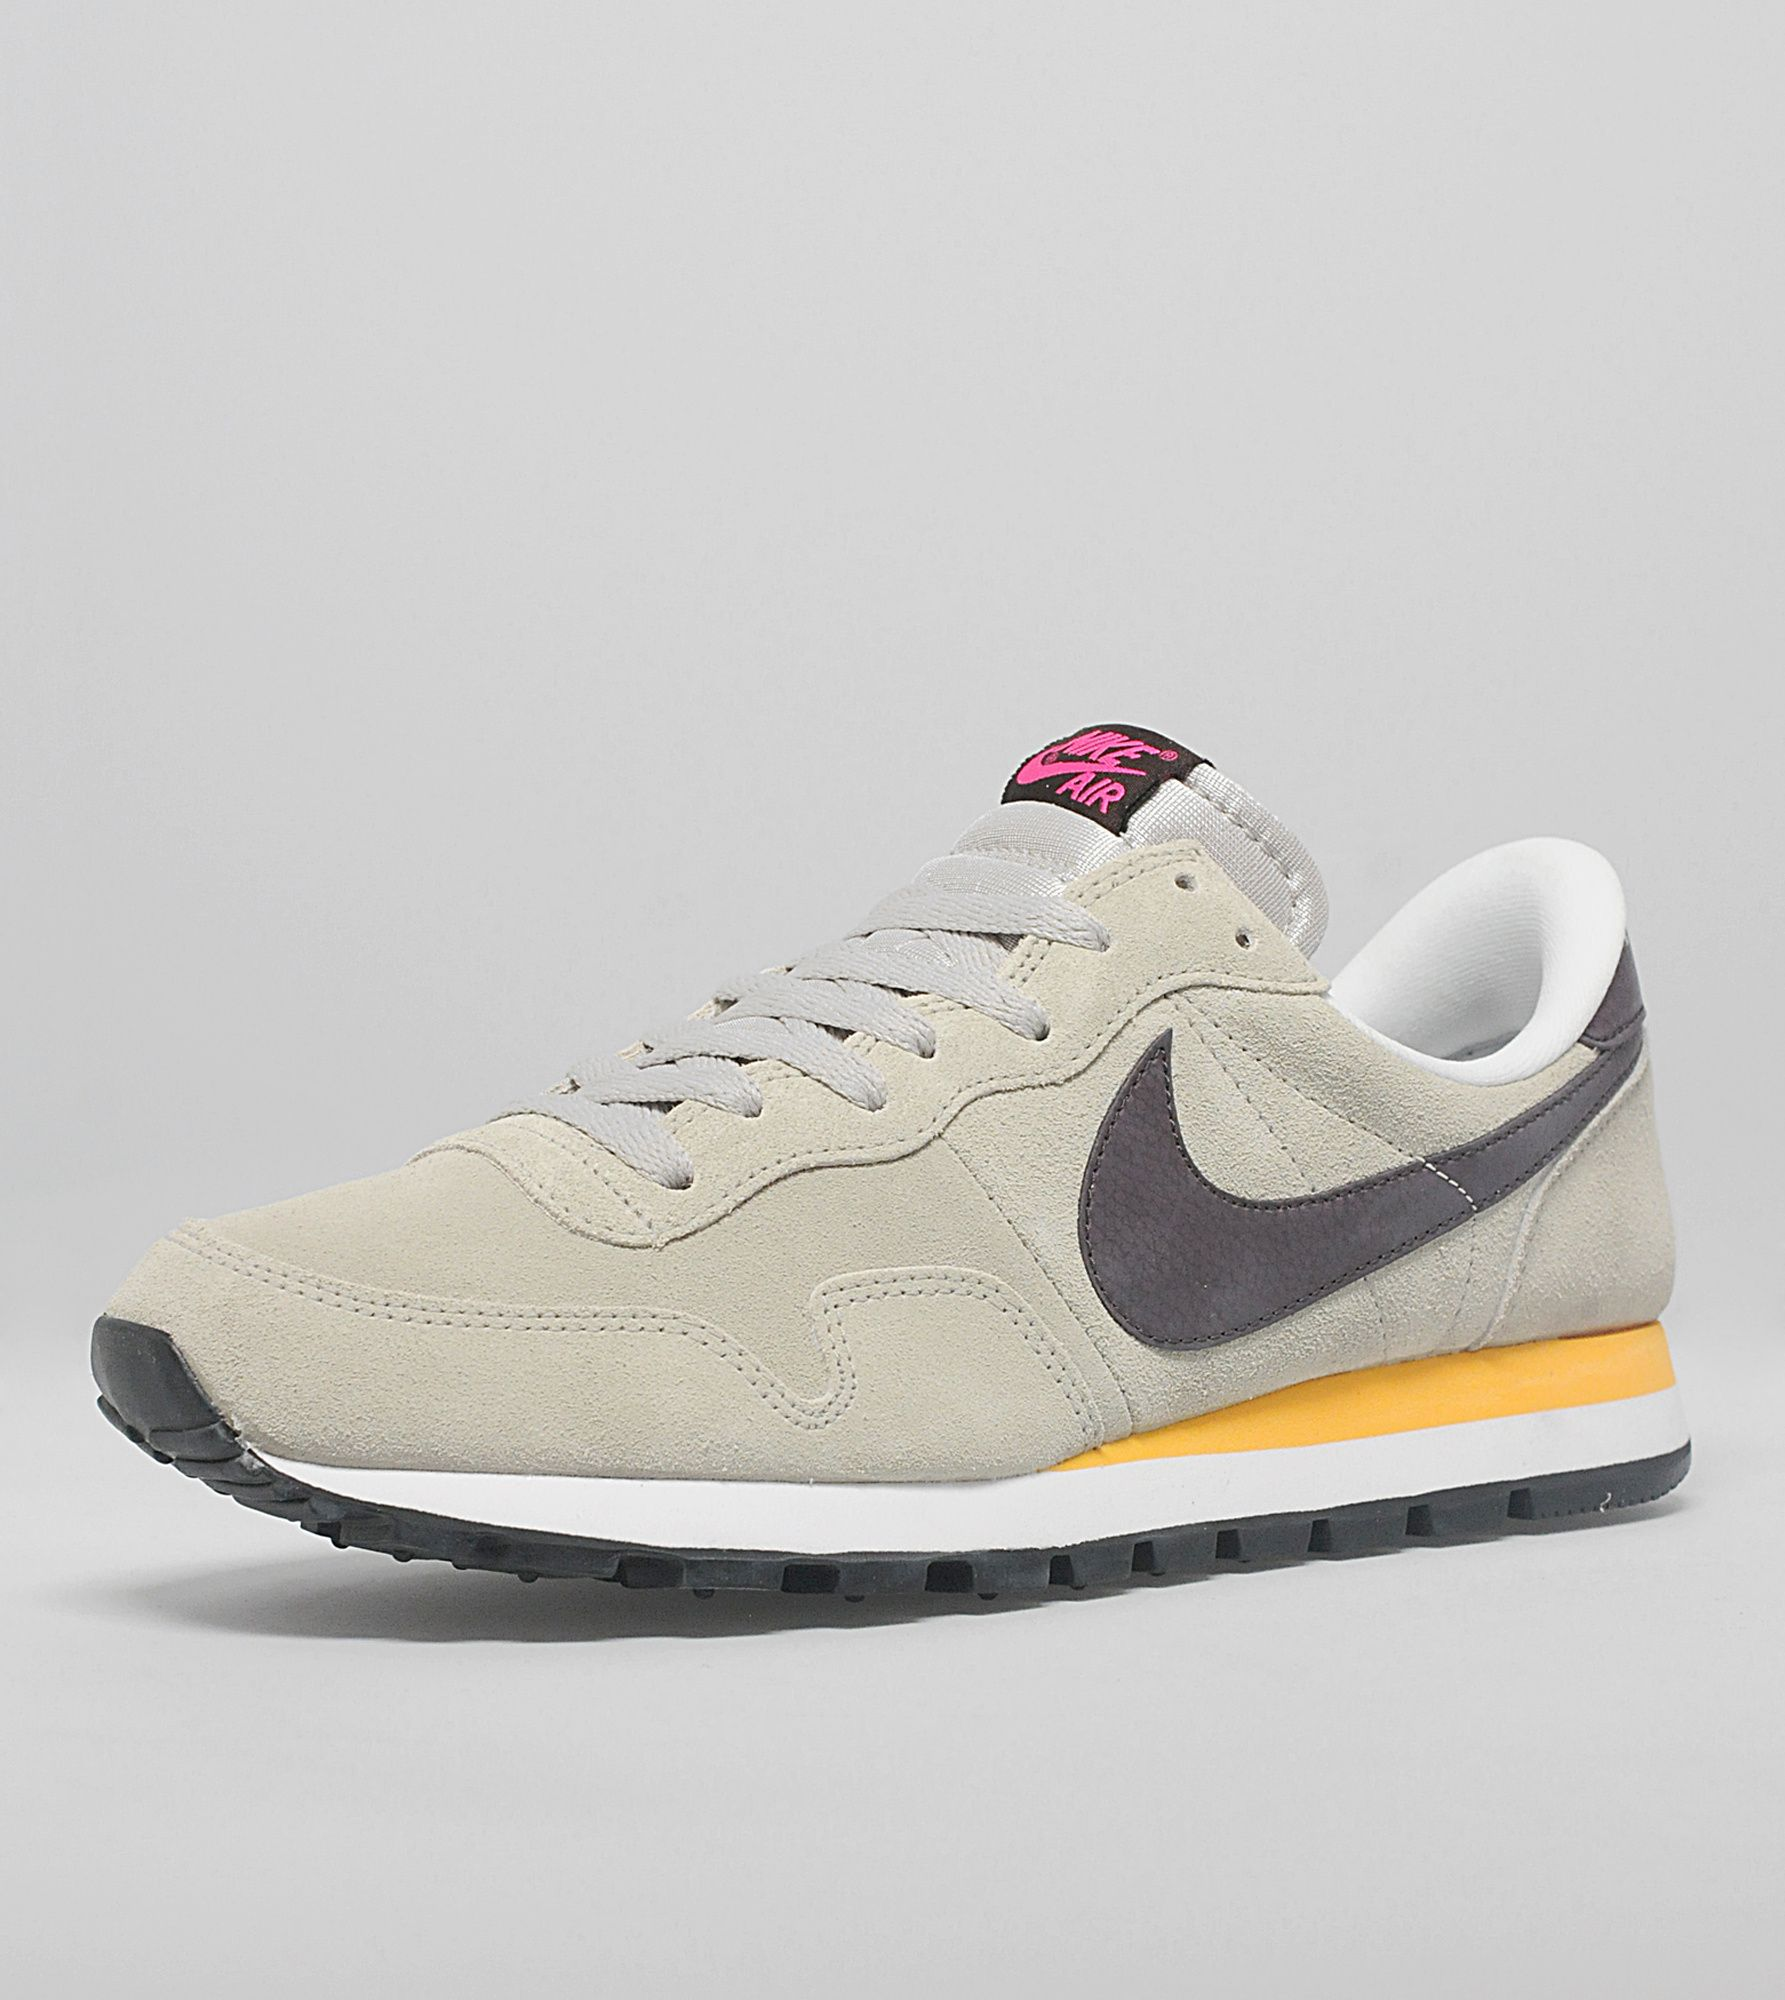 Nike Pegasus 83